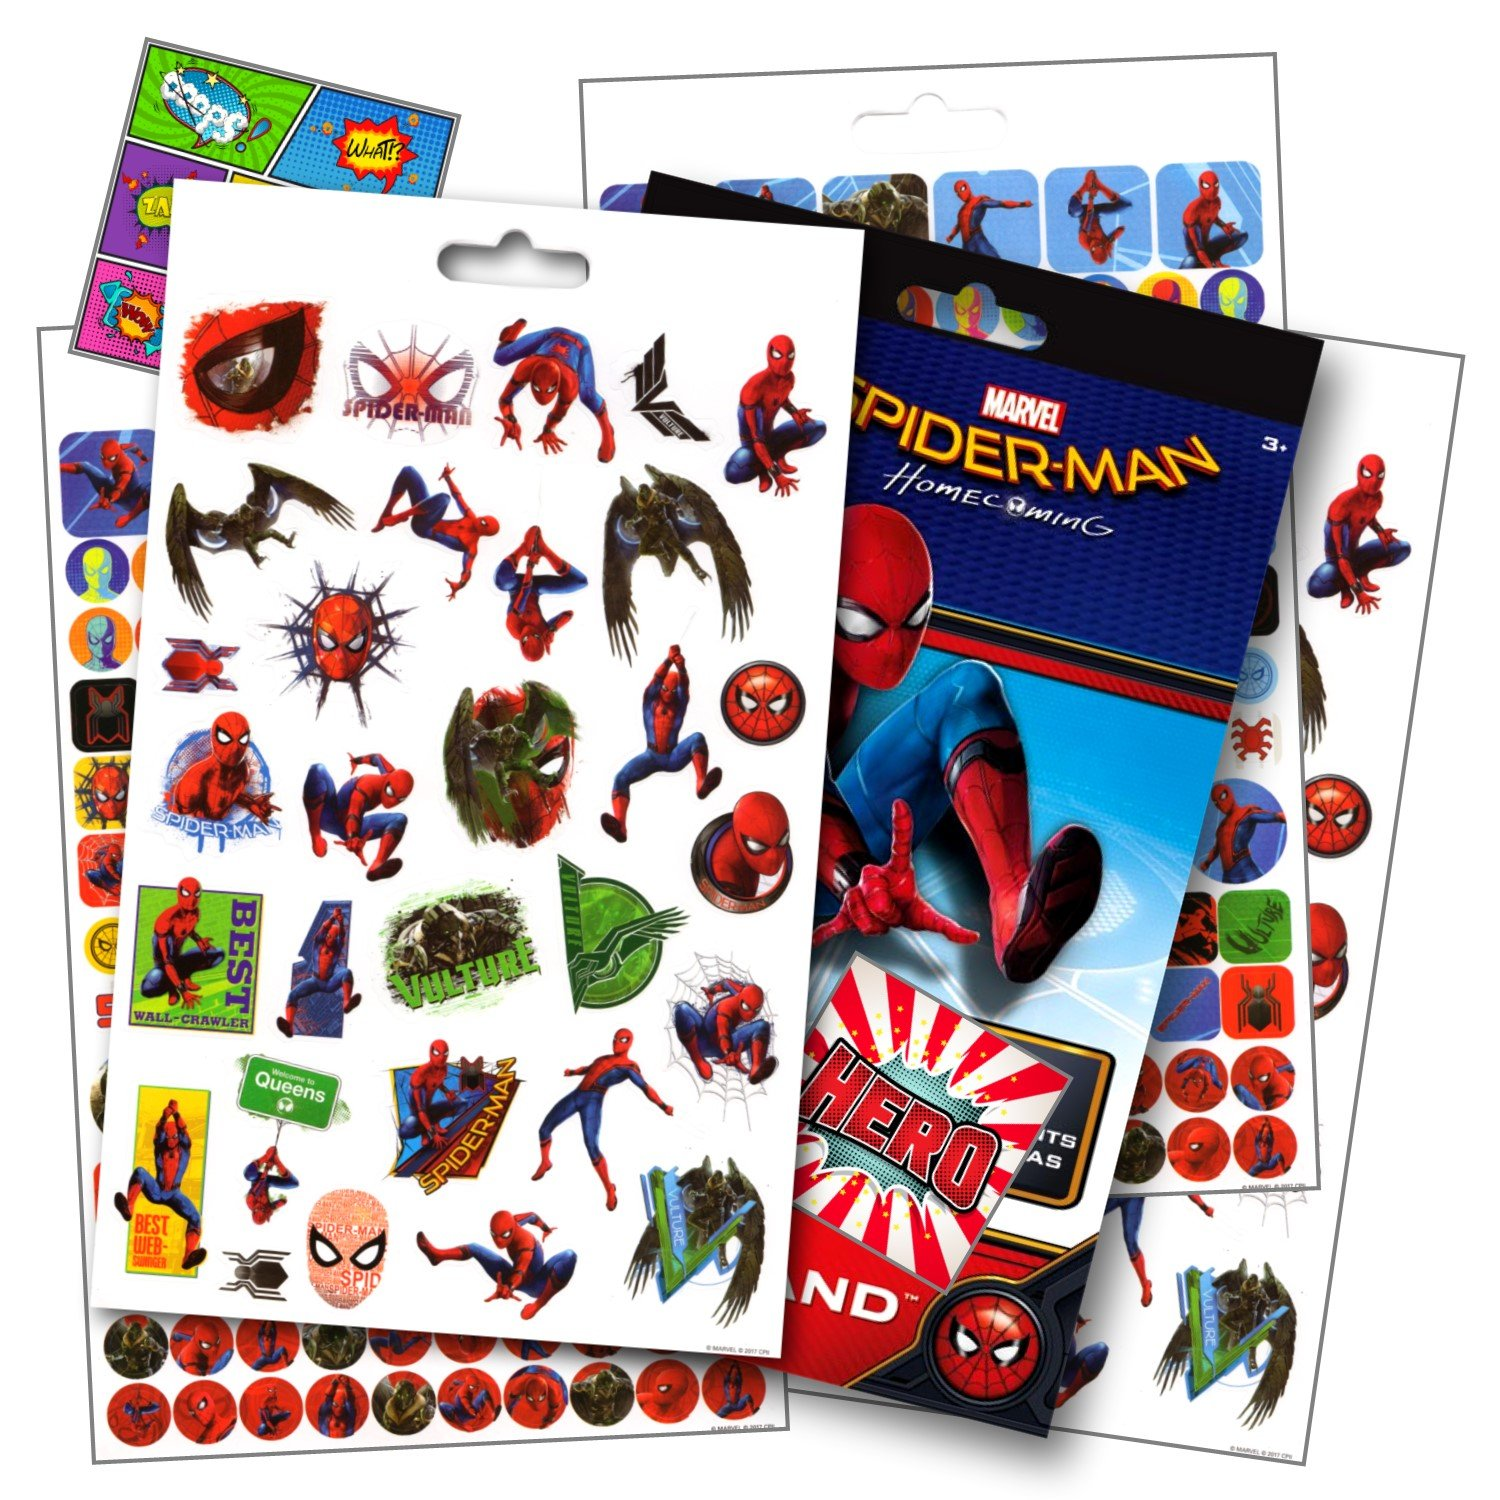 Spiderman Homecoming Movie Stickers Over 295 Spiderman Stickers Bundled with Specialty Superhero Reward Stickers